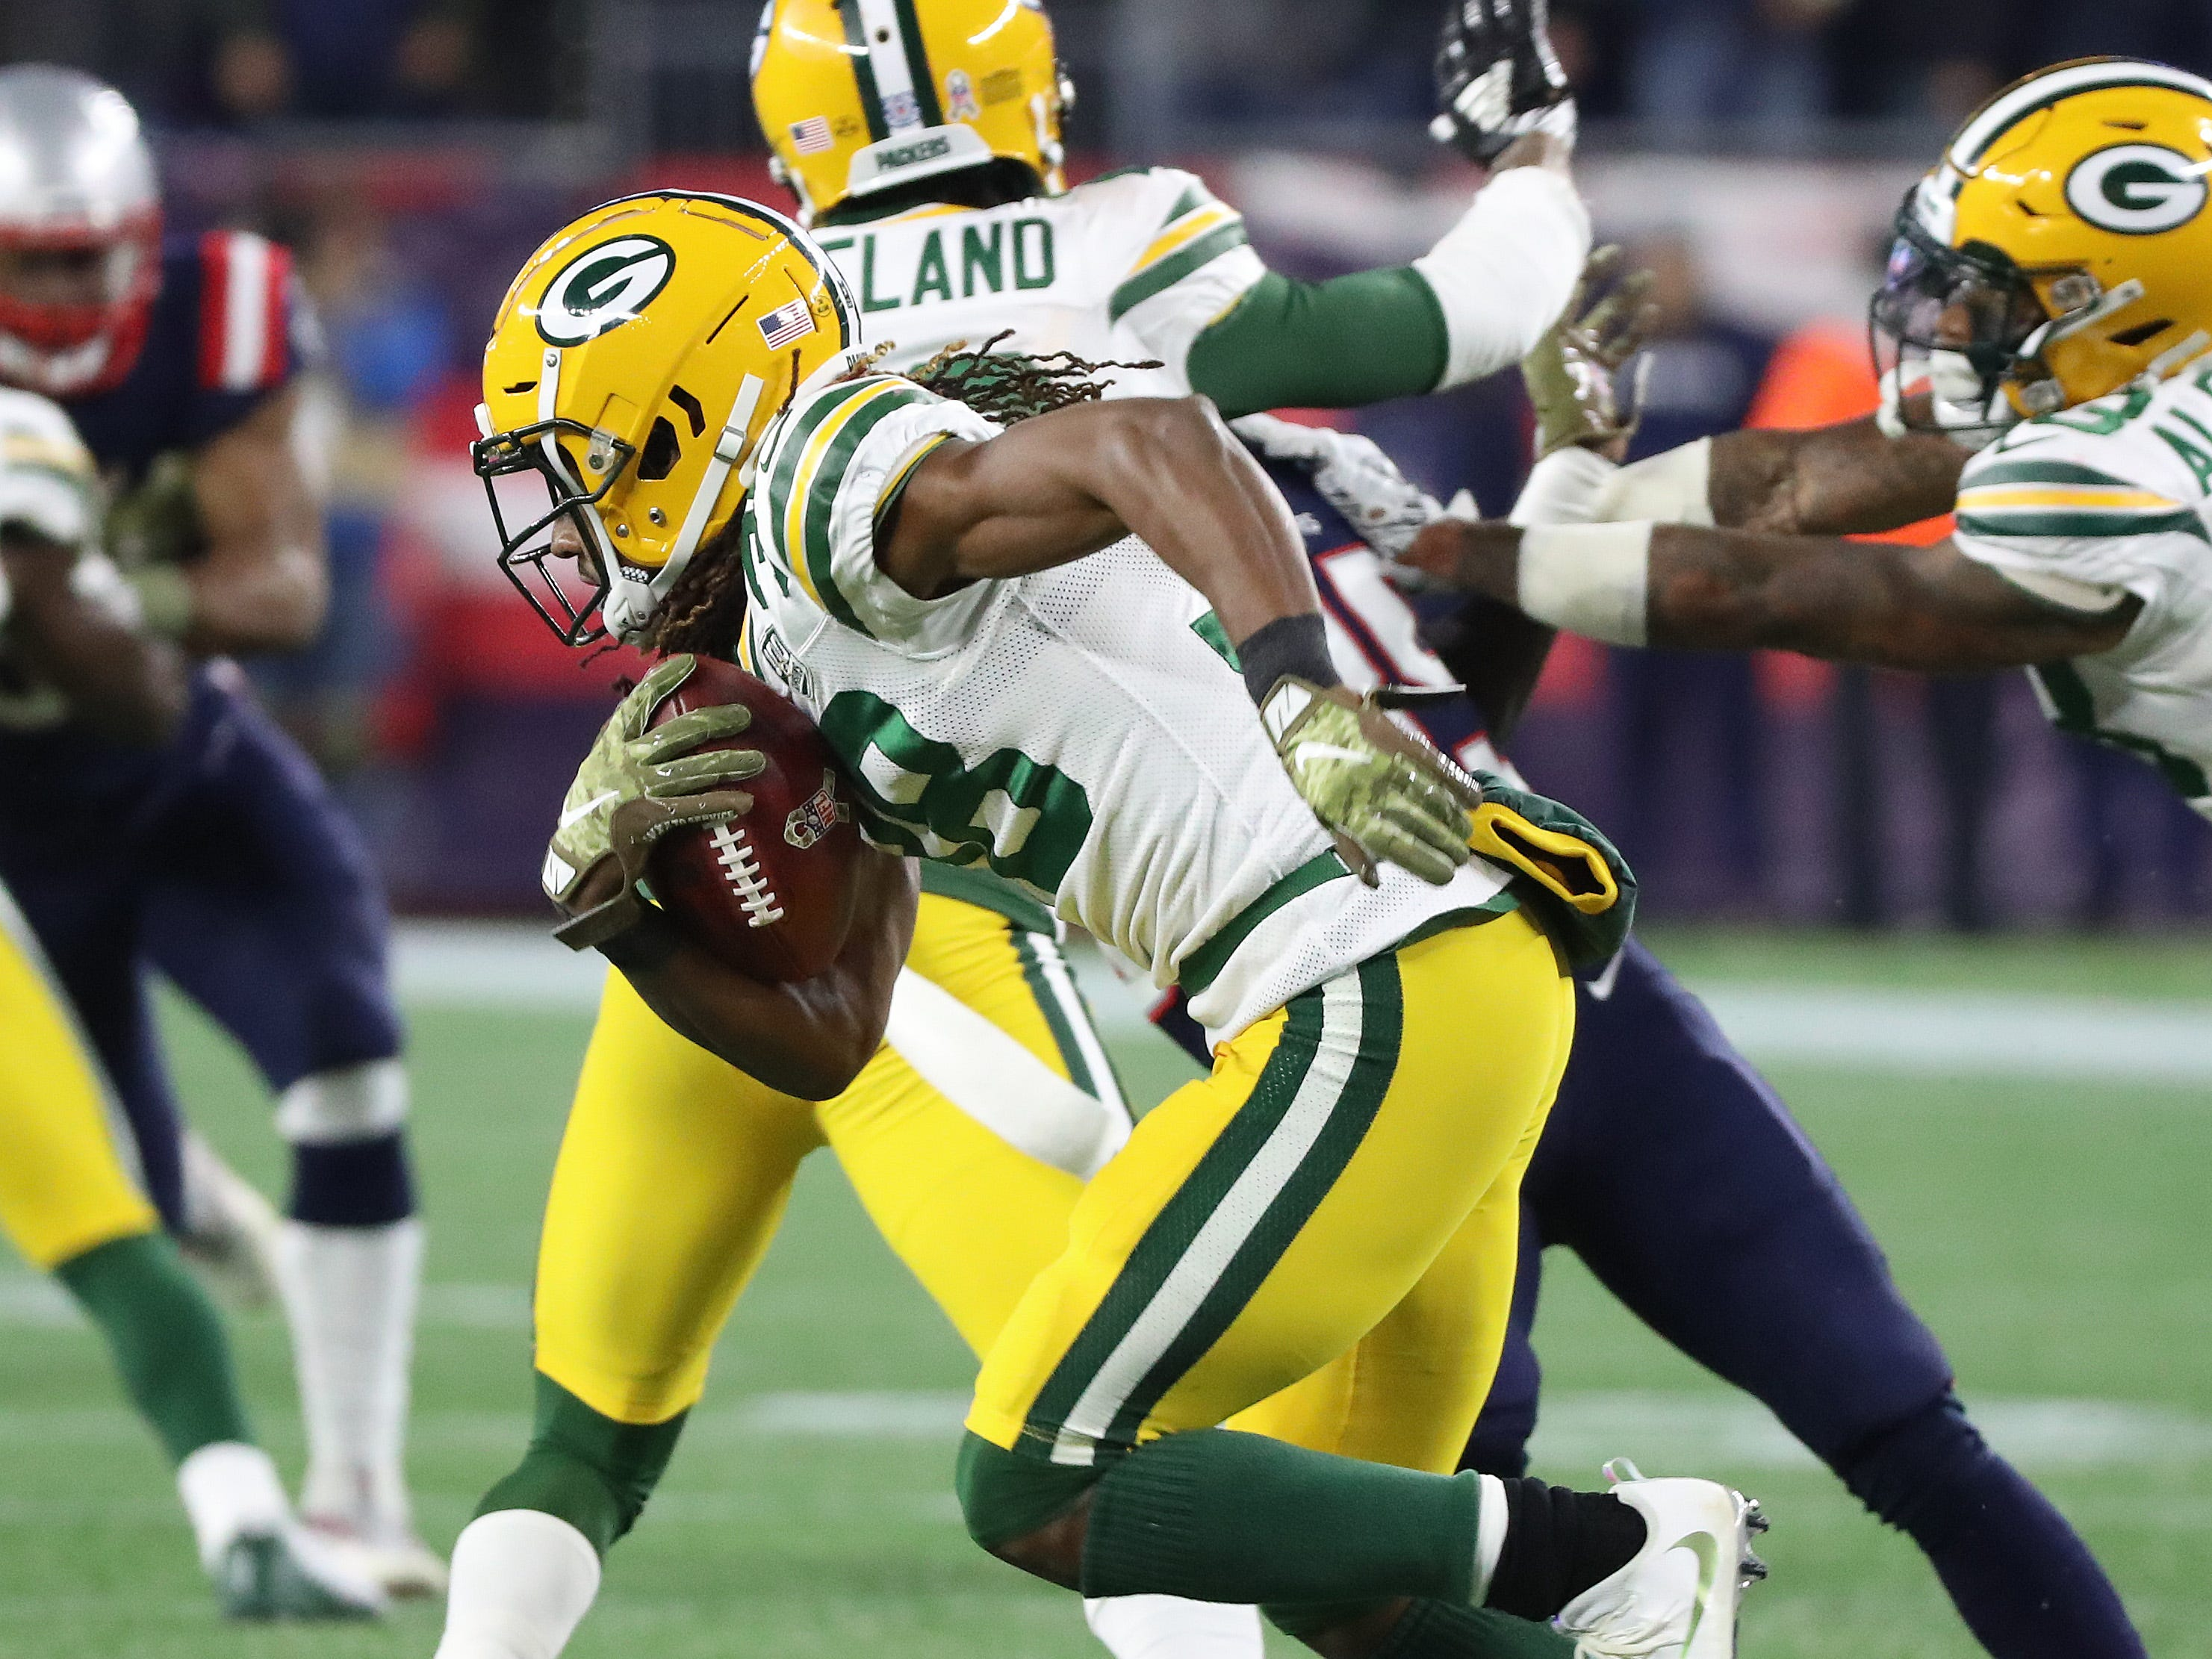 Green Bay Packers cornerback Tramon Williams (38) returns a punt against the New England Patriots Sunday, November 4, 2018 at Gillette Stadium in Foxborough, Mass.